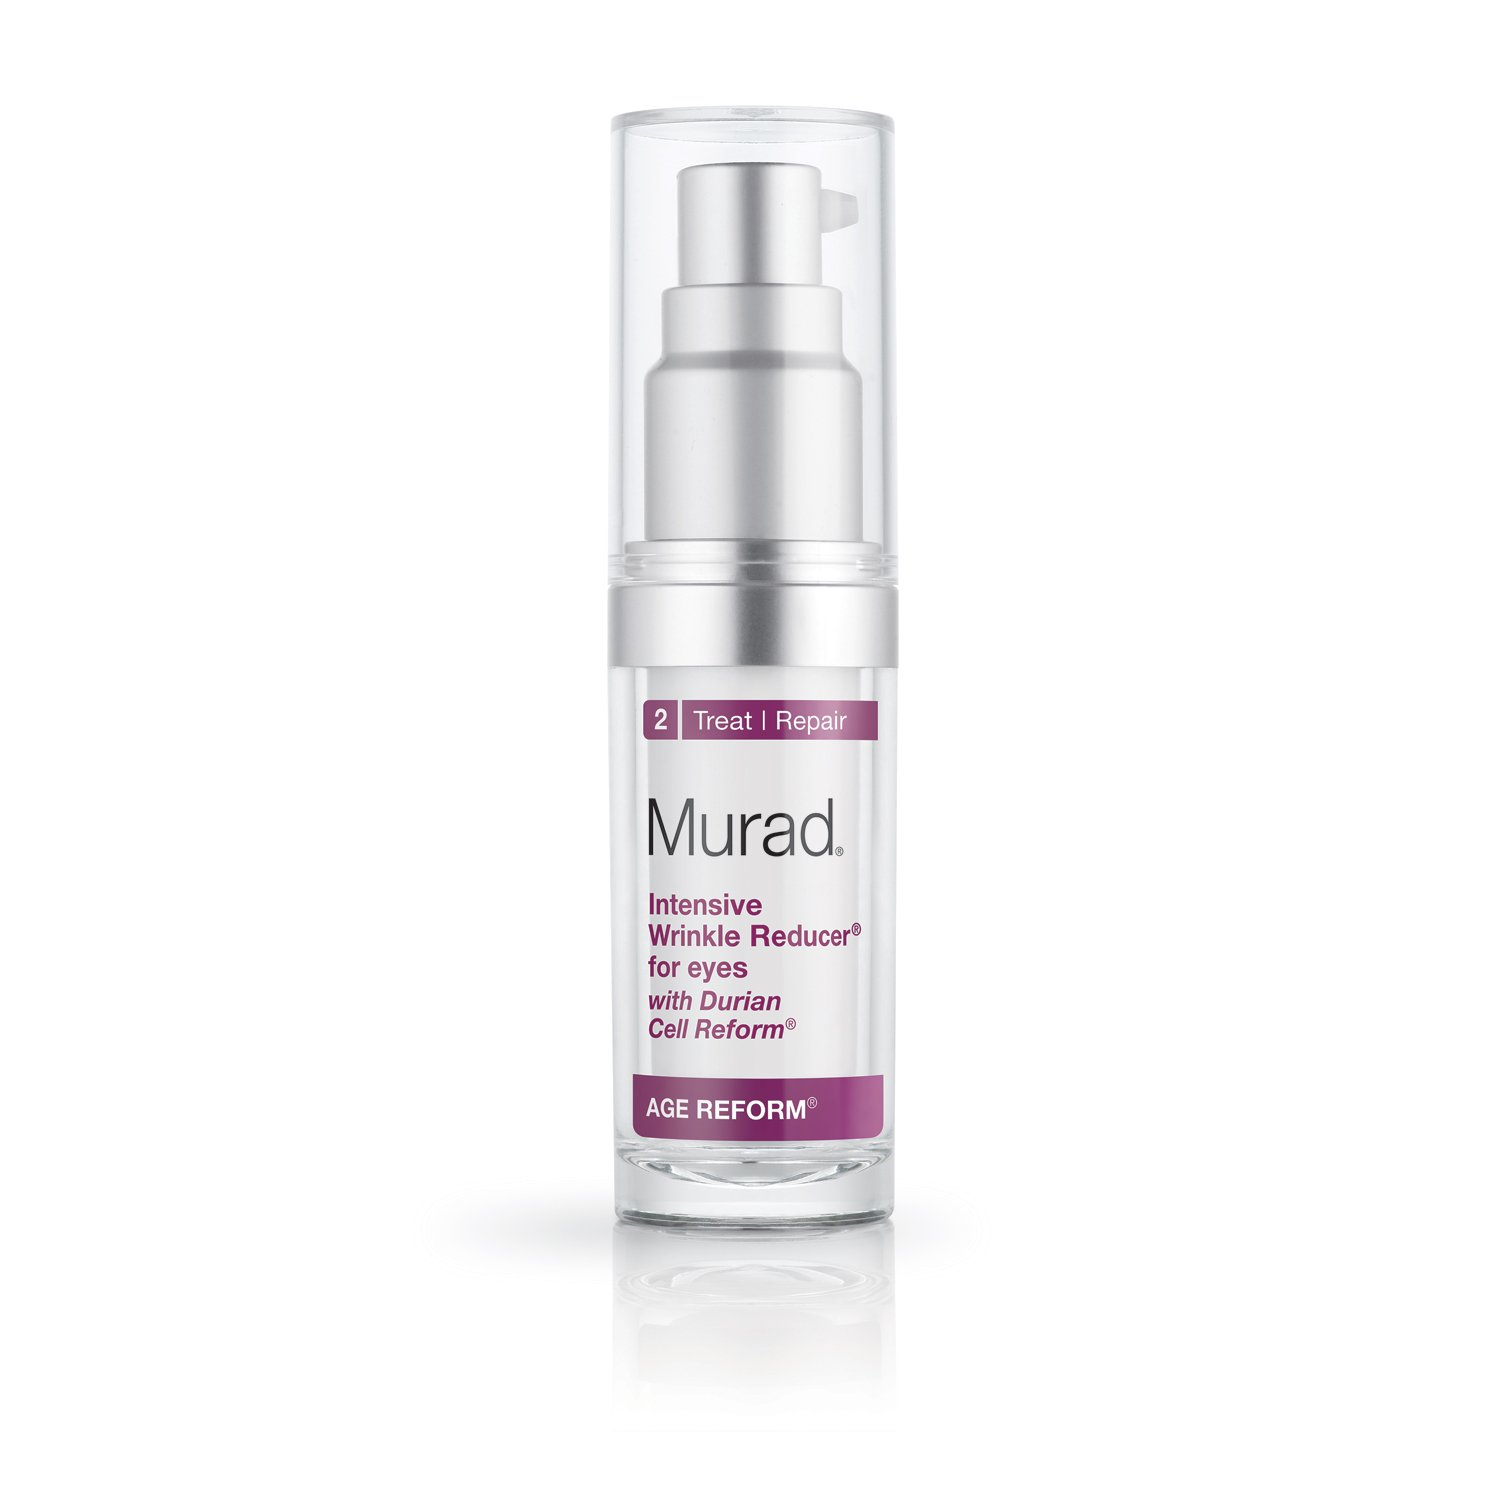 Murad Intensive Wrinkle Reducer for Eyes with Durian Cell Refom, 0.5 Fluid Ounce